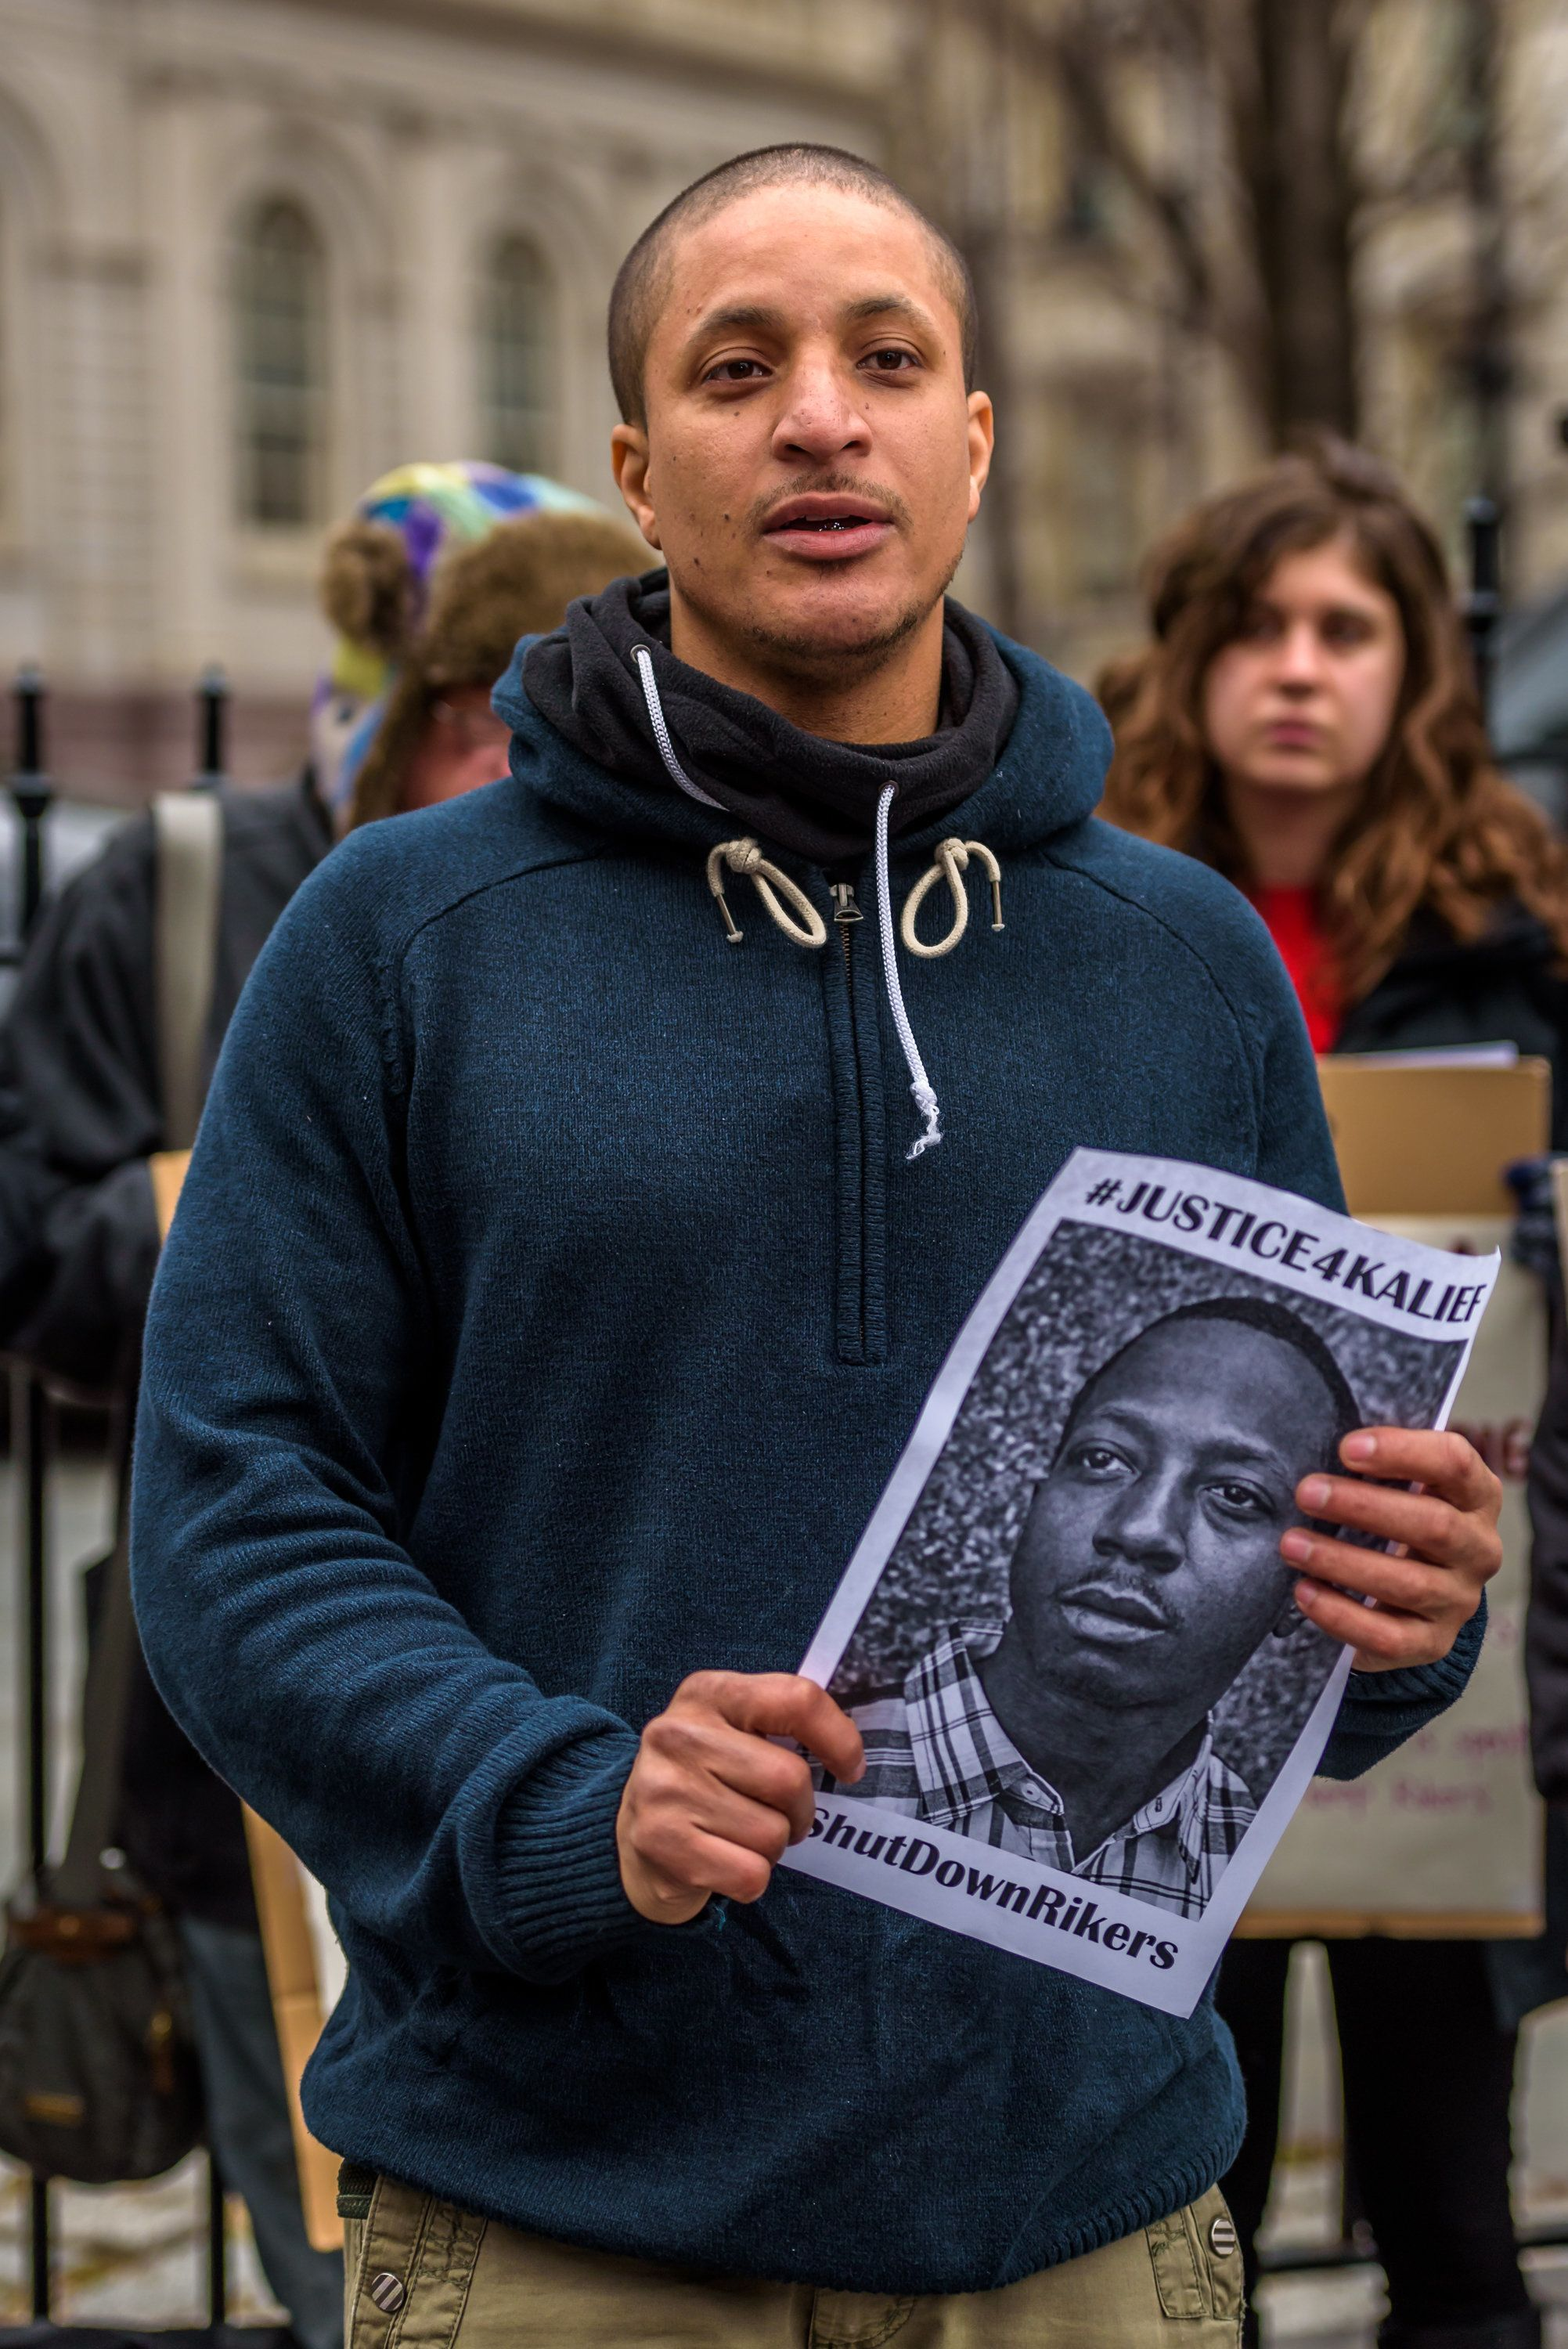 NEW YORK CITY HALL, NEW YORK, NY, UNITED STATES - 2016/02/23: Akeem Browder, brother of Kalif Browder at the press conference at New York City Hall to formerly ask Mayor de Blasio, Governor Cuomo and Department of Correction Commissioner Ponte to immediately shut down Rikers Island. (Photo by Erik McGregor/Pacific Press/LightRocket via Getty Images)